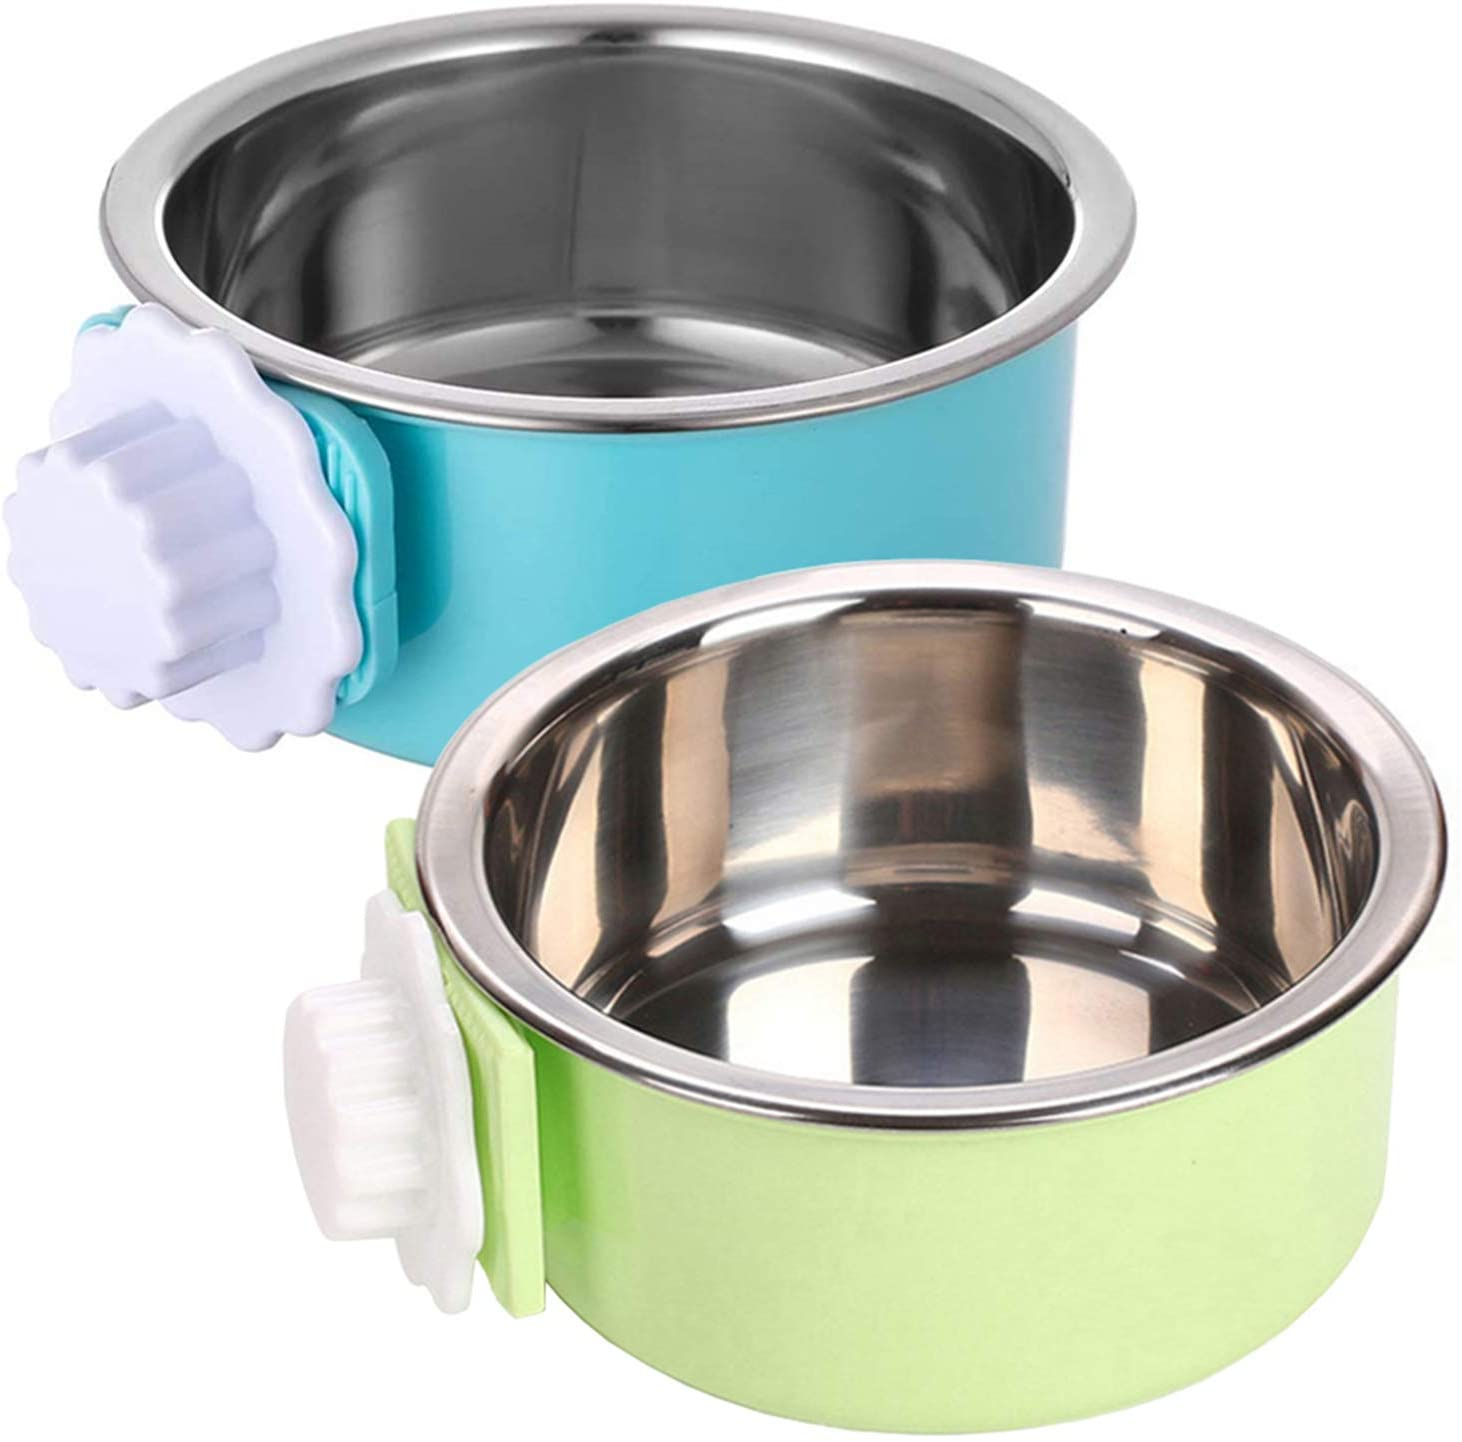 kathson Crate Dog Bowl, Removable Stainless Steel Hanging Pet Cage Bowl Food & Water Feeder Coop Cup for Cat, Puppy, Birds, Rats, Guinea Pigs